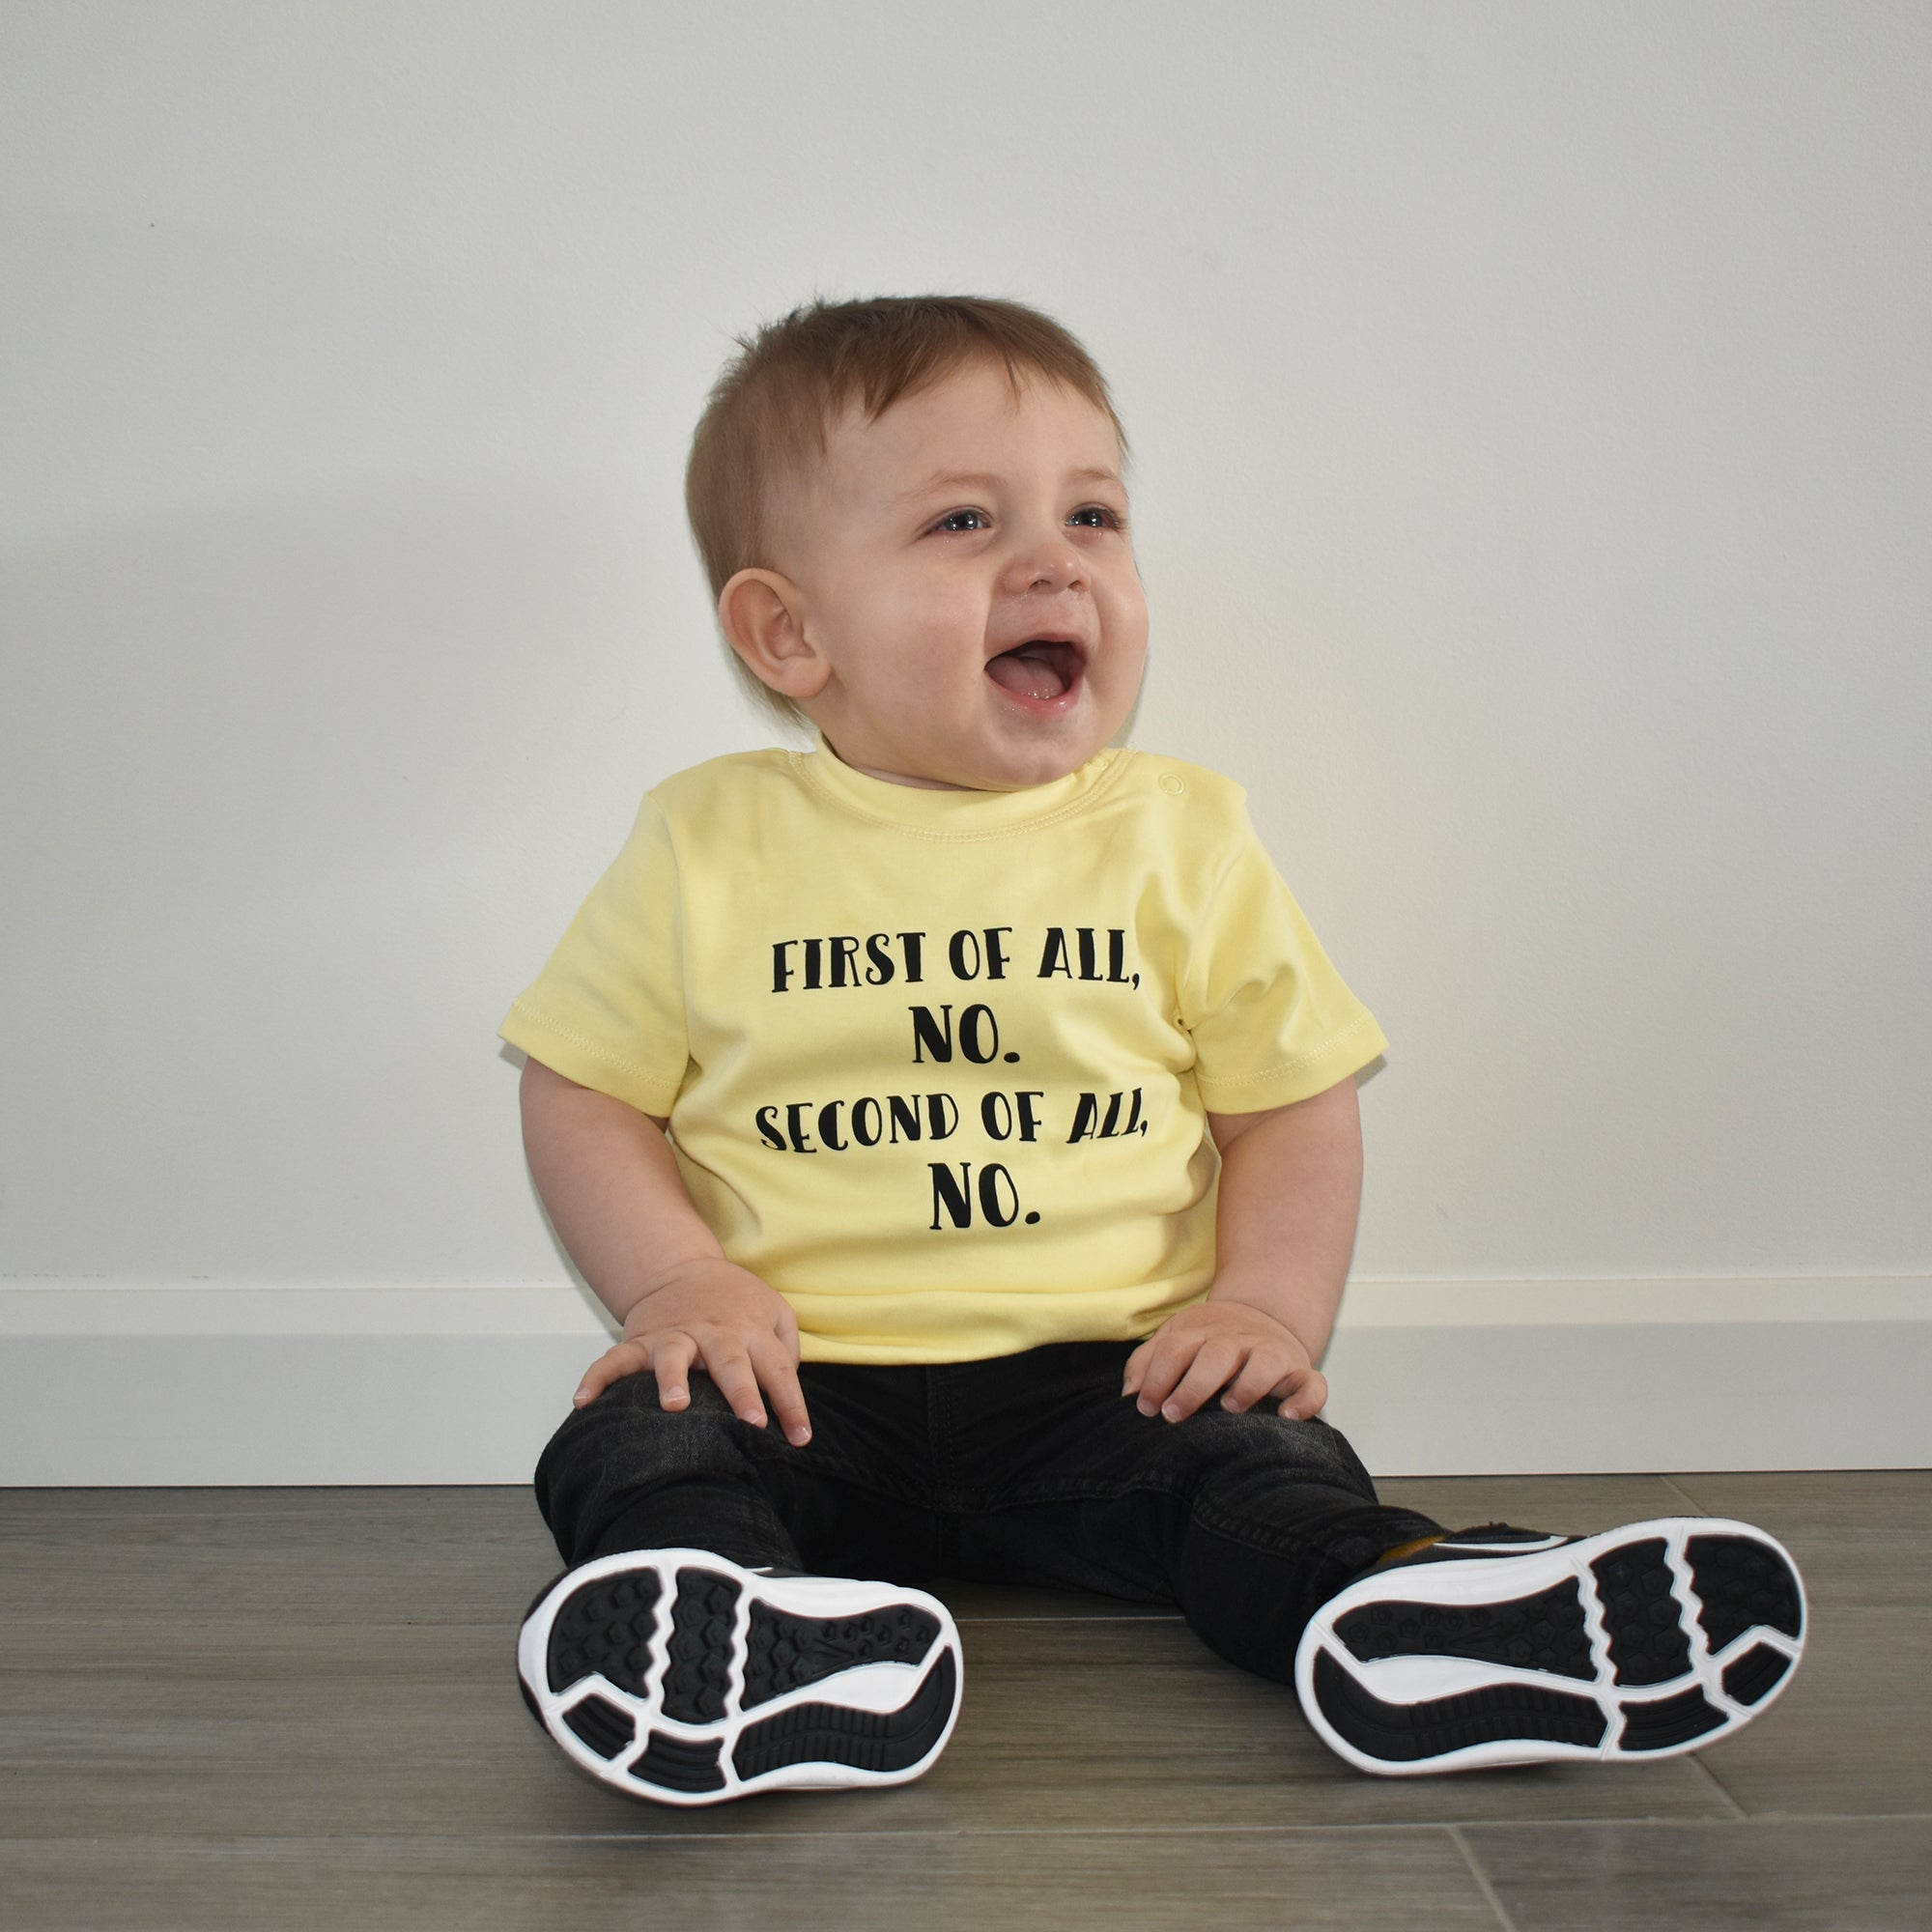 'First of all, no. Second of all, no.' baby shortsleeve shirt